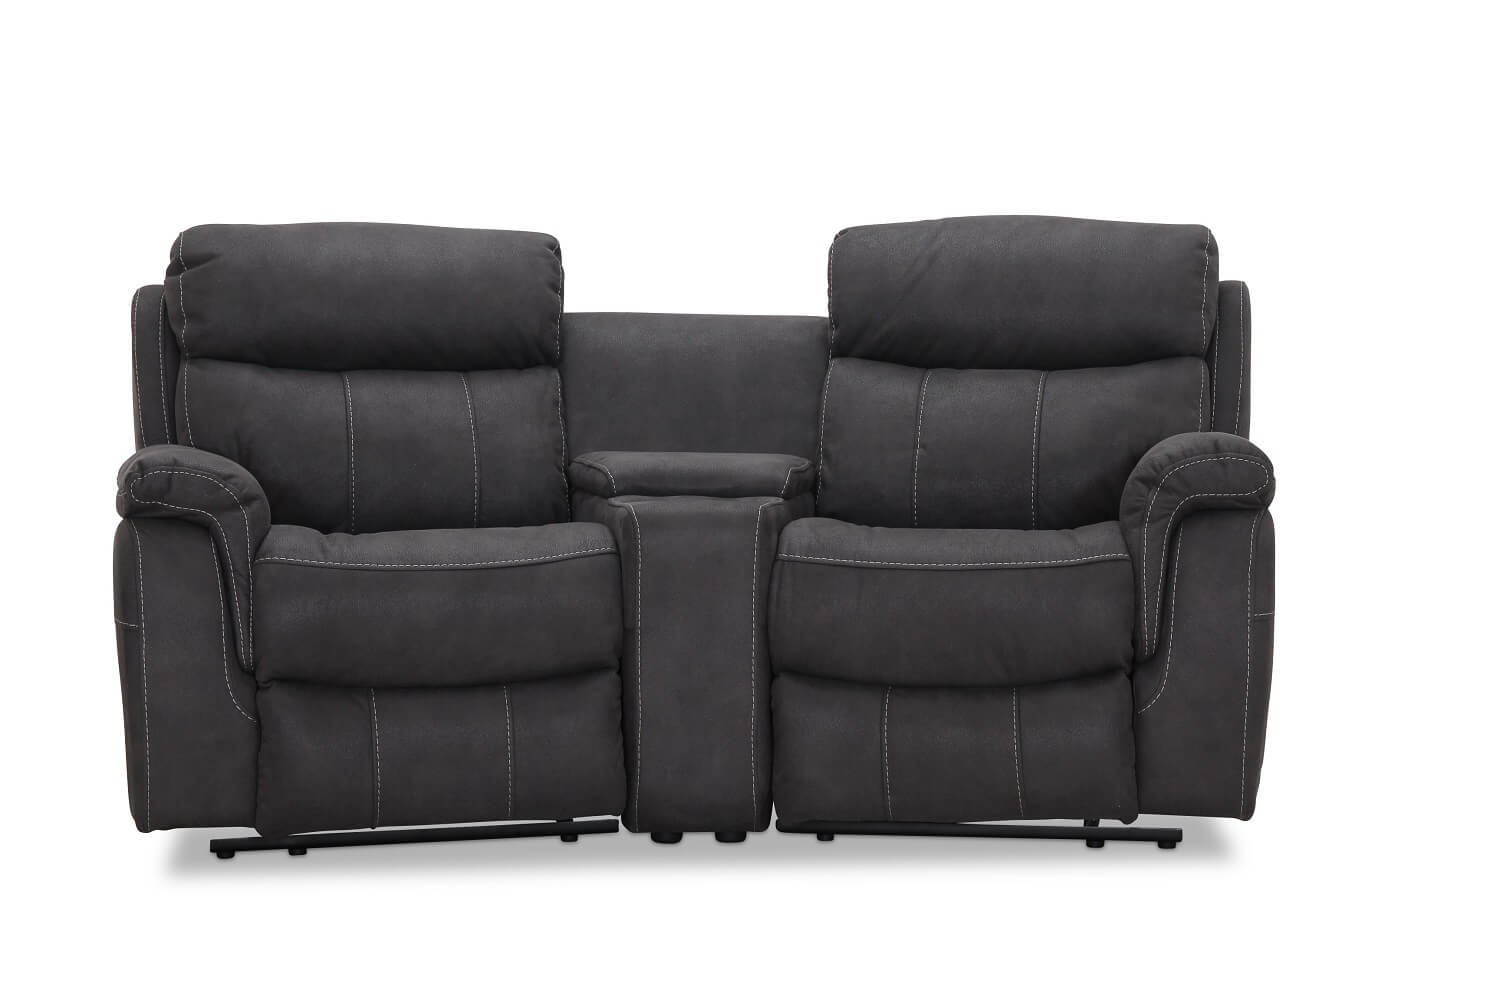 Arizona Biograf sofa recliner grå - 2 pers